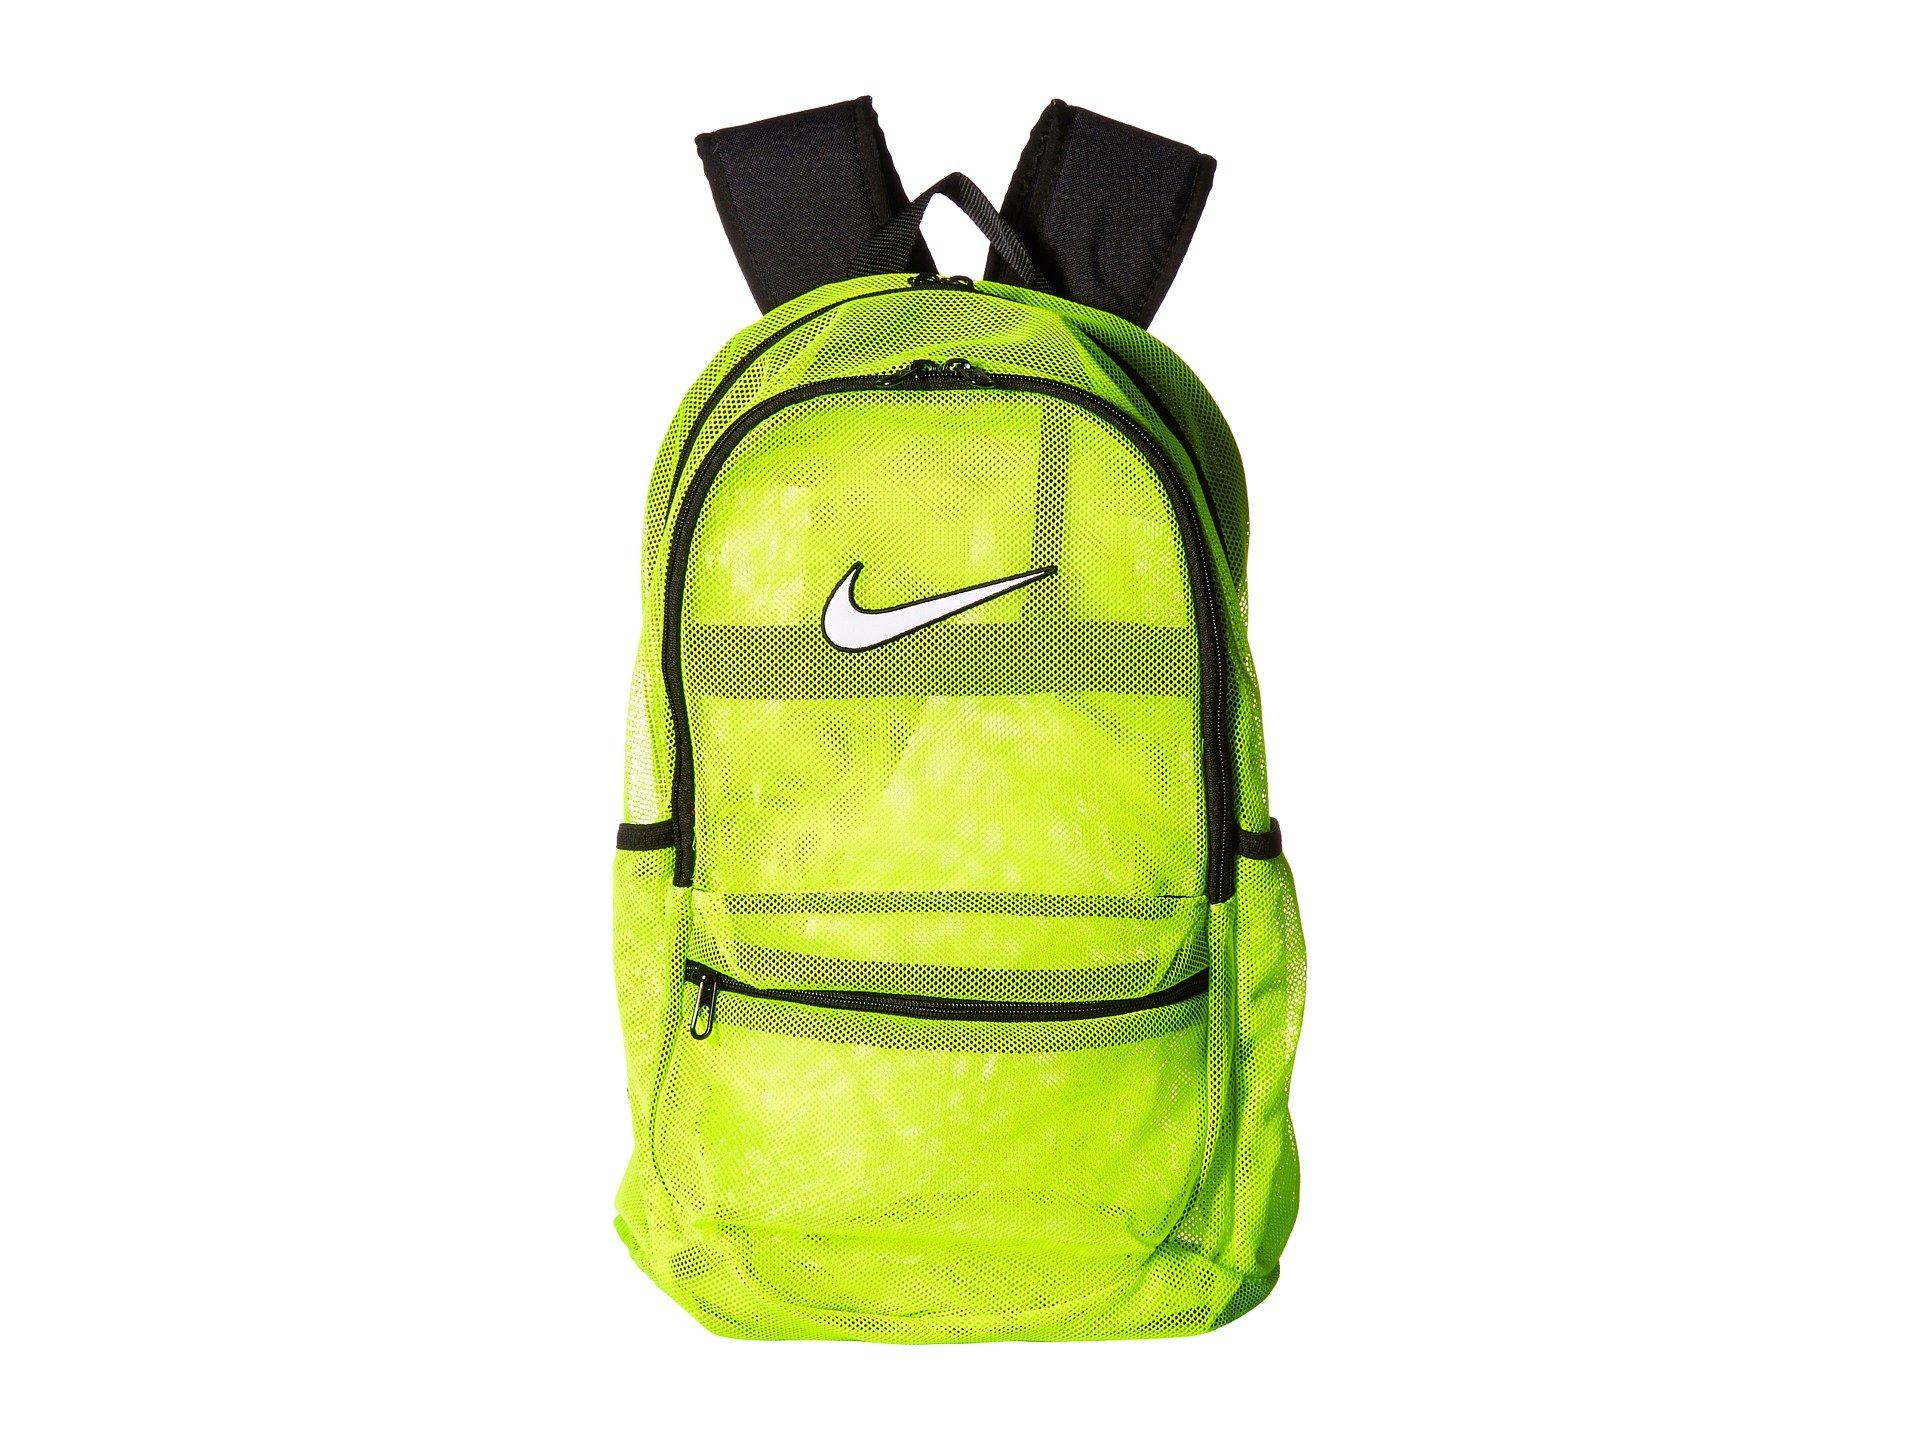 f408c09b80 Nike Brasilia Mesh Backpack In Volt Black White